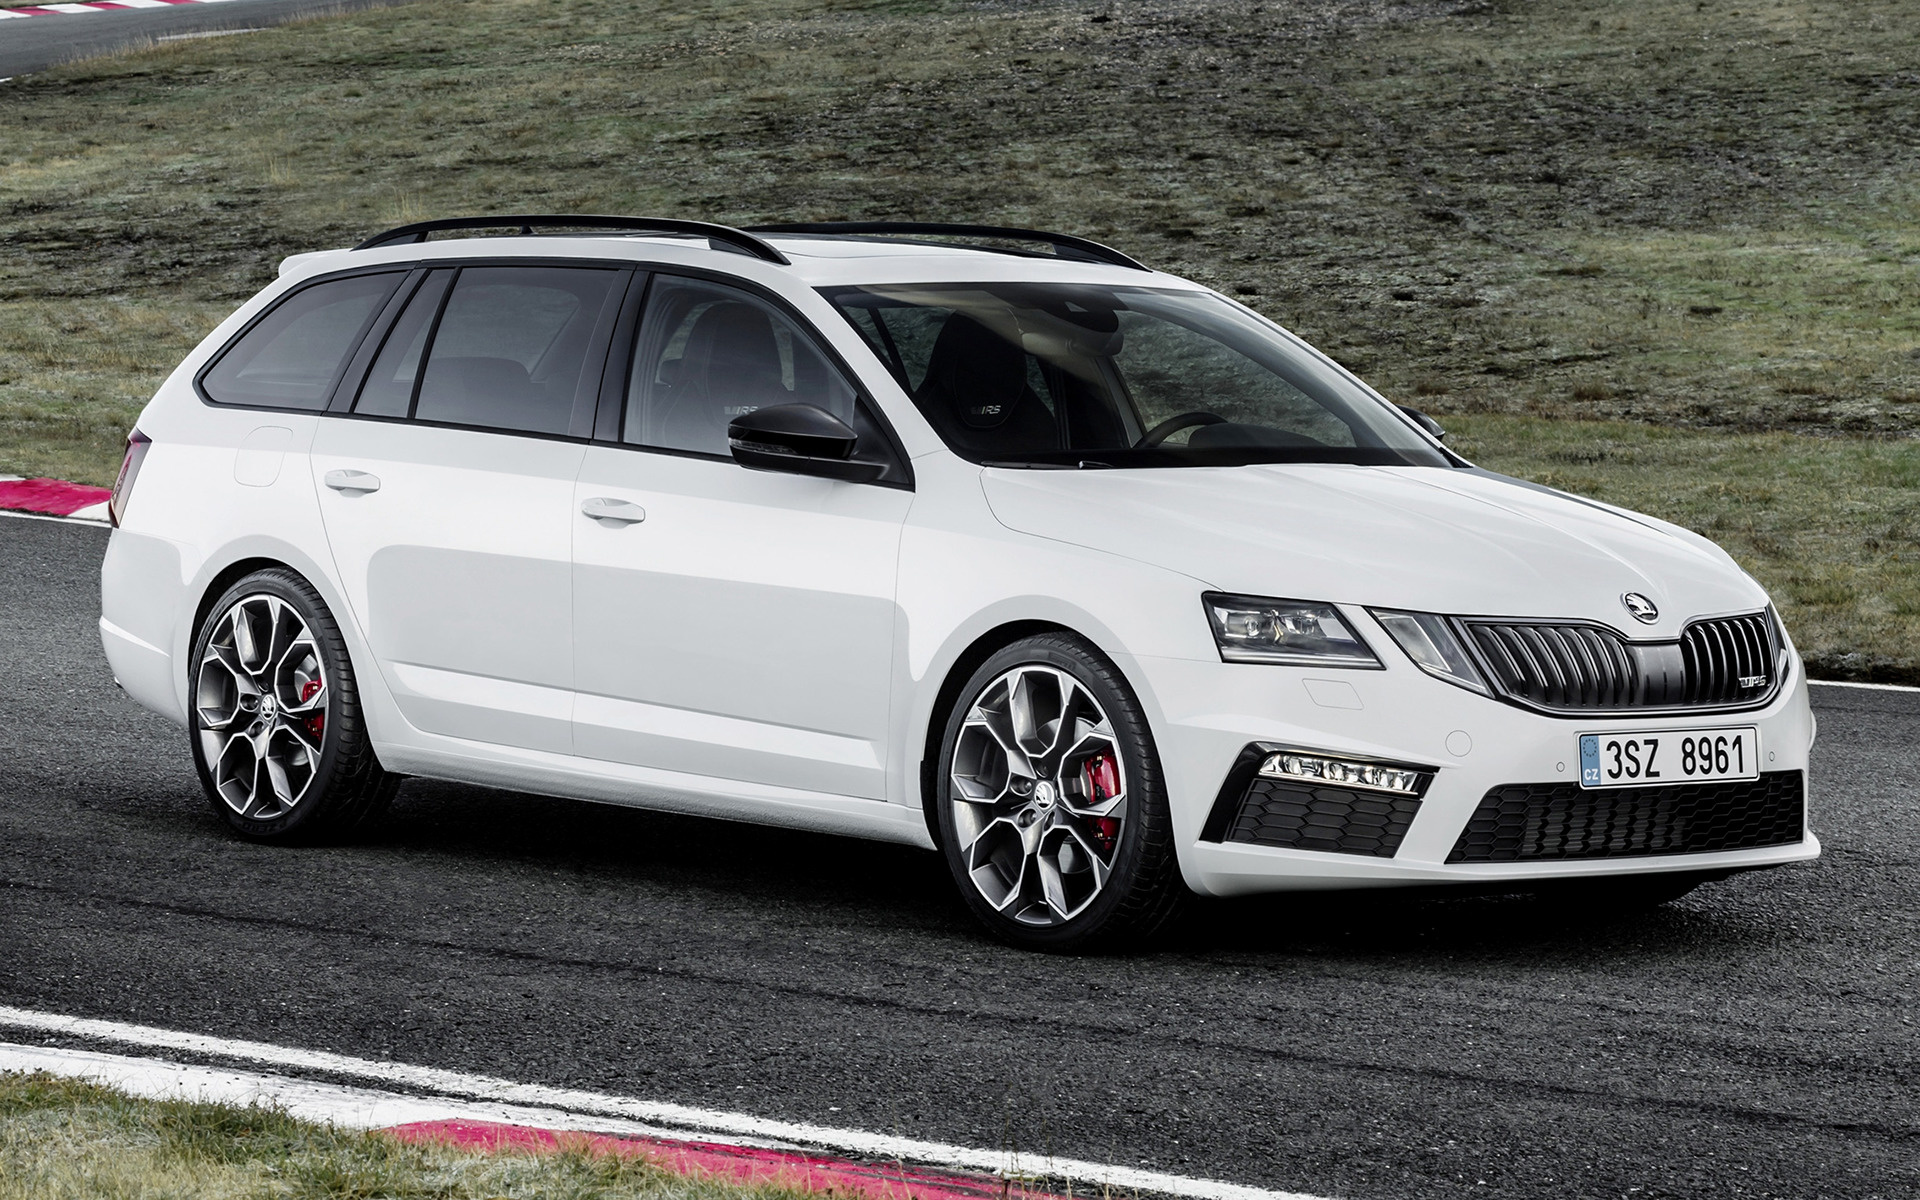 Skoda Octavia Rs 2020 1920x1200 Download Hd Wallpaper Wallpapertip